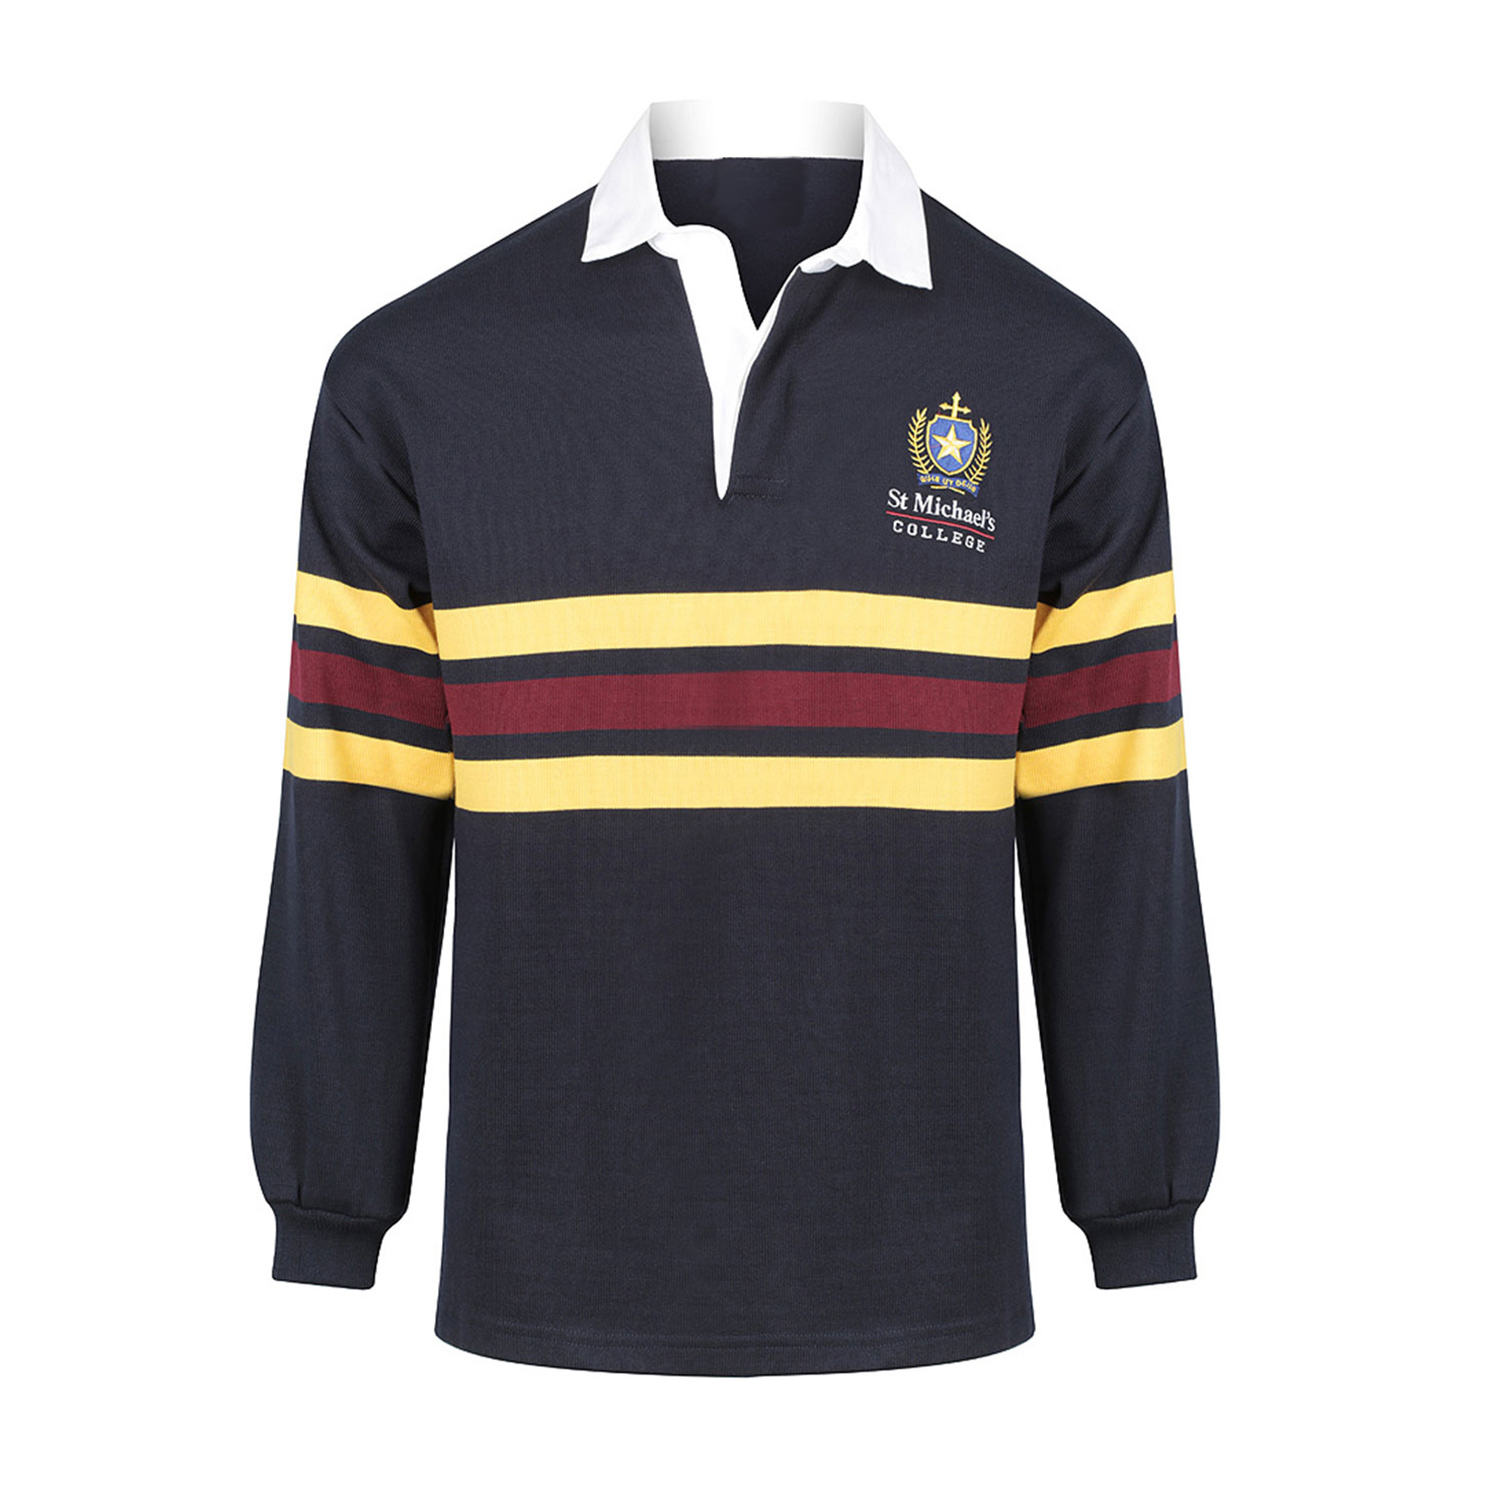 974de0bff St Michaels SA Rugby Guernsey - Dobsons